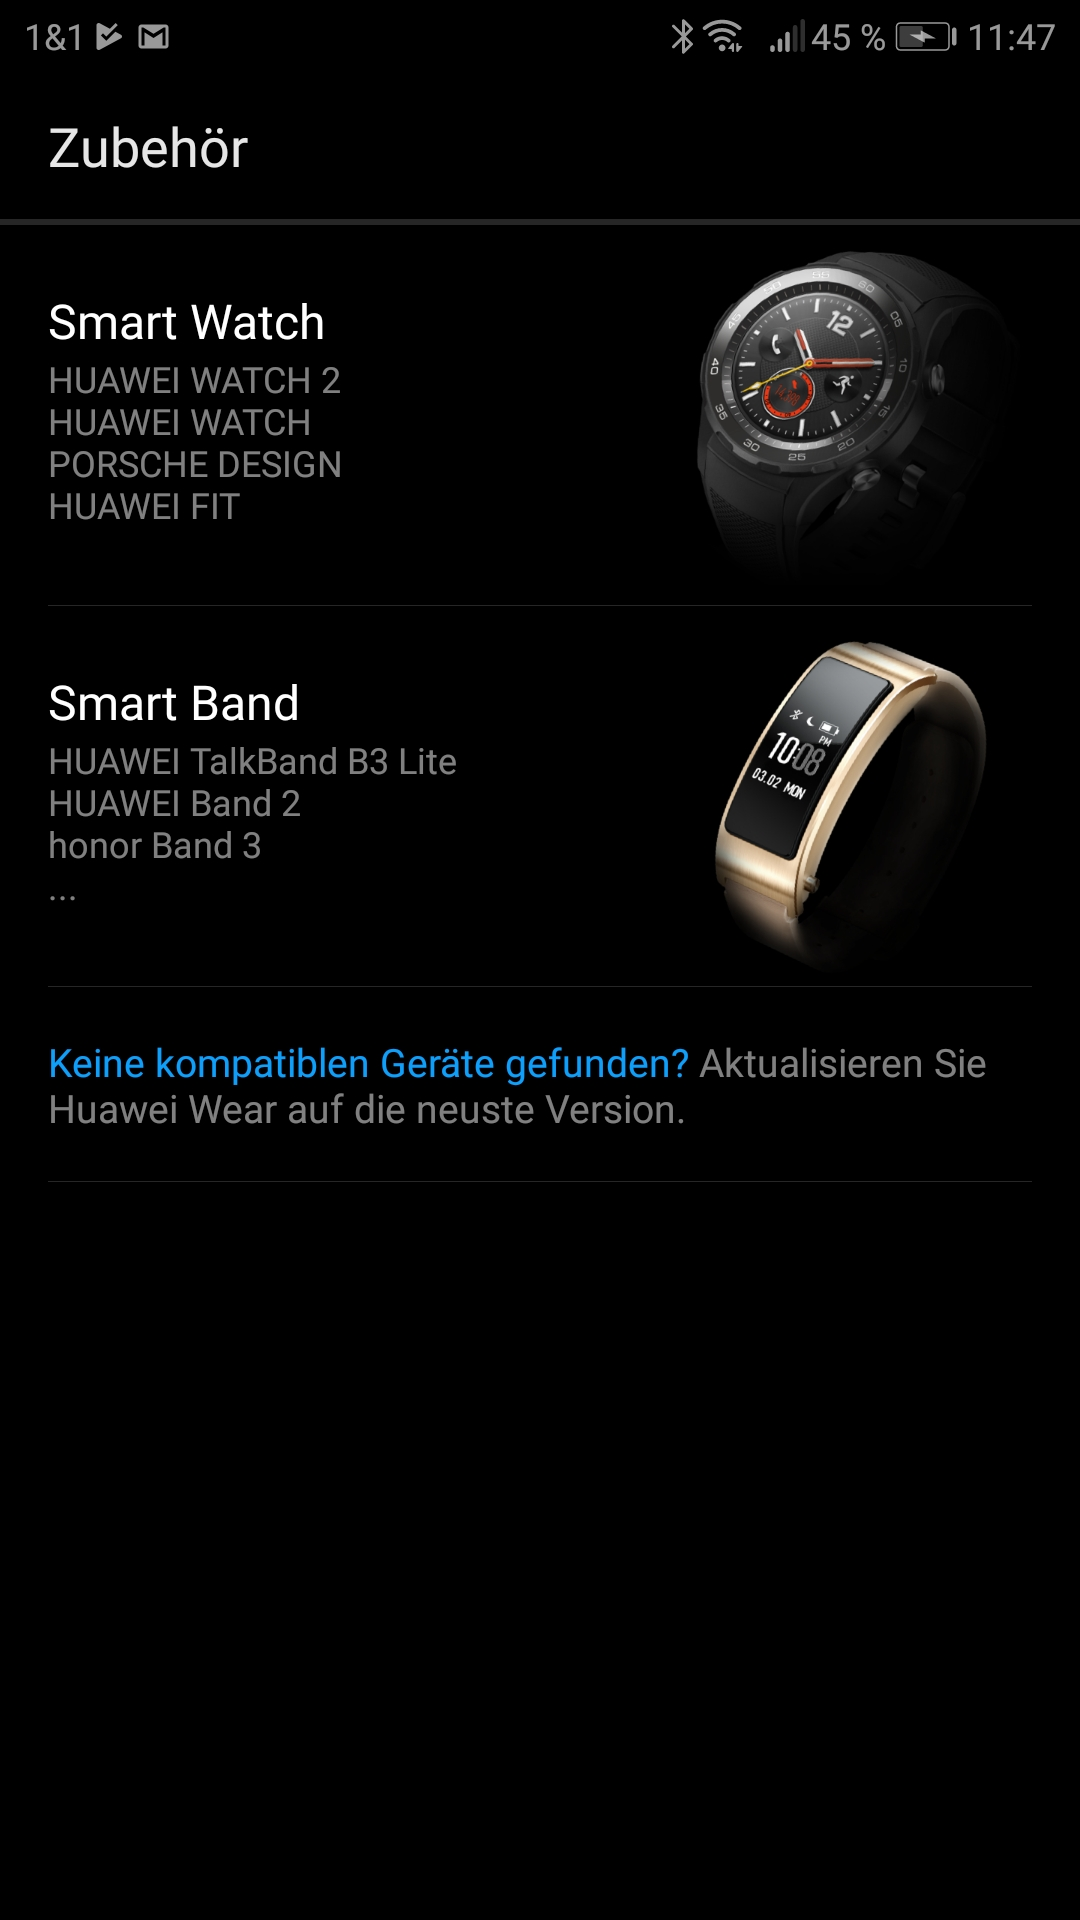 huawei watch 2 die smartwatch im test bei der stiftung warentest und alle funktionen im check. Black Bedroom Furniture Sets. Home Design Ideas